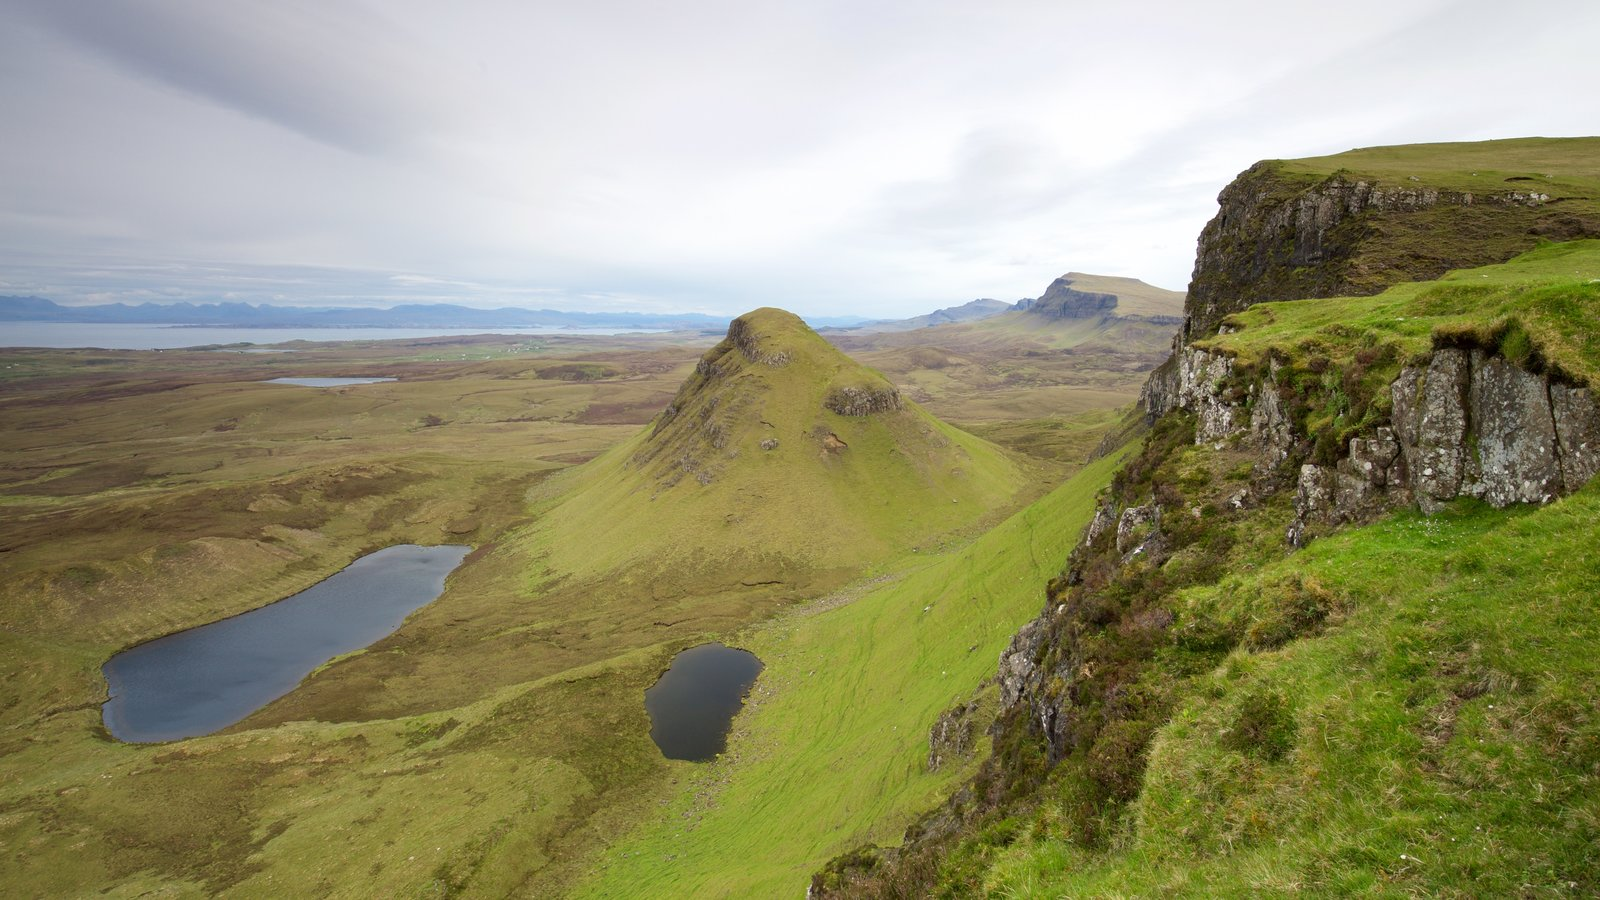 Quiraing showing mountains, tranquil scenes and general coastal views